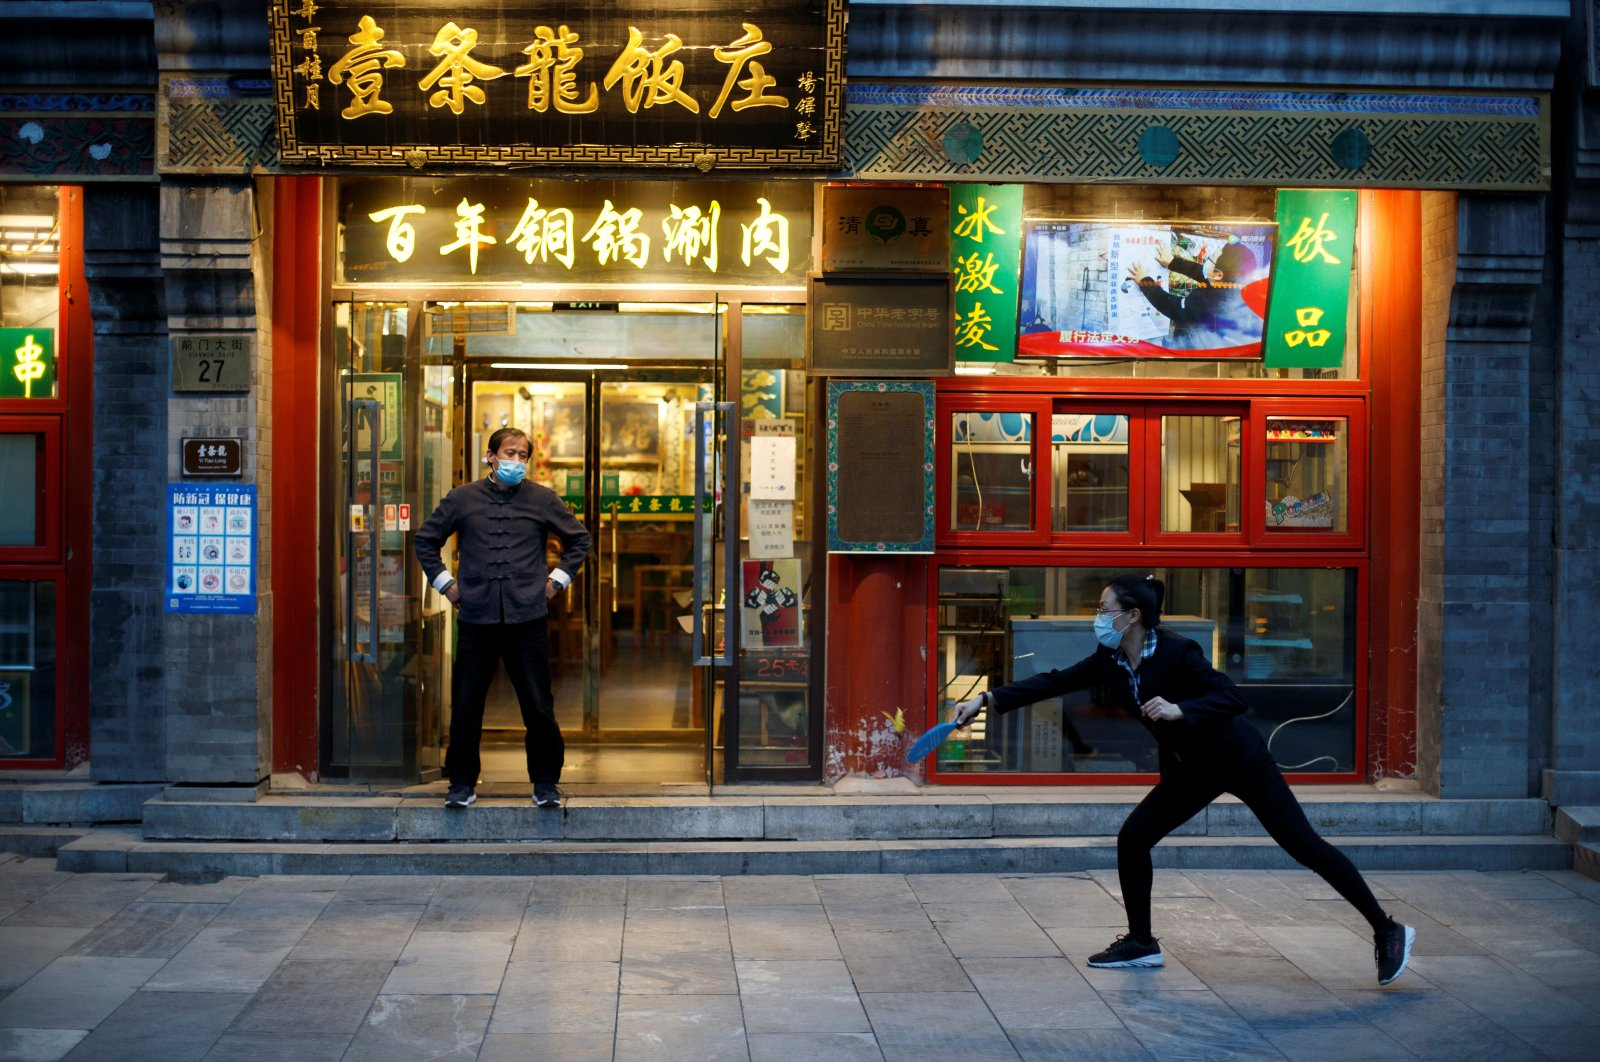 Staff play badminton outside their restaurant in the Qianmen district, one of the top tourist destinations in Beijing, as the coronavirus outbreak continues in China, April 8, 2020. (Reuters Photo)